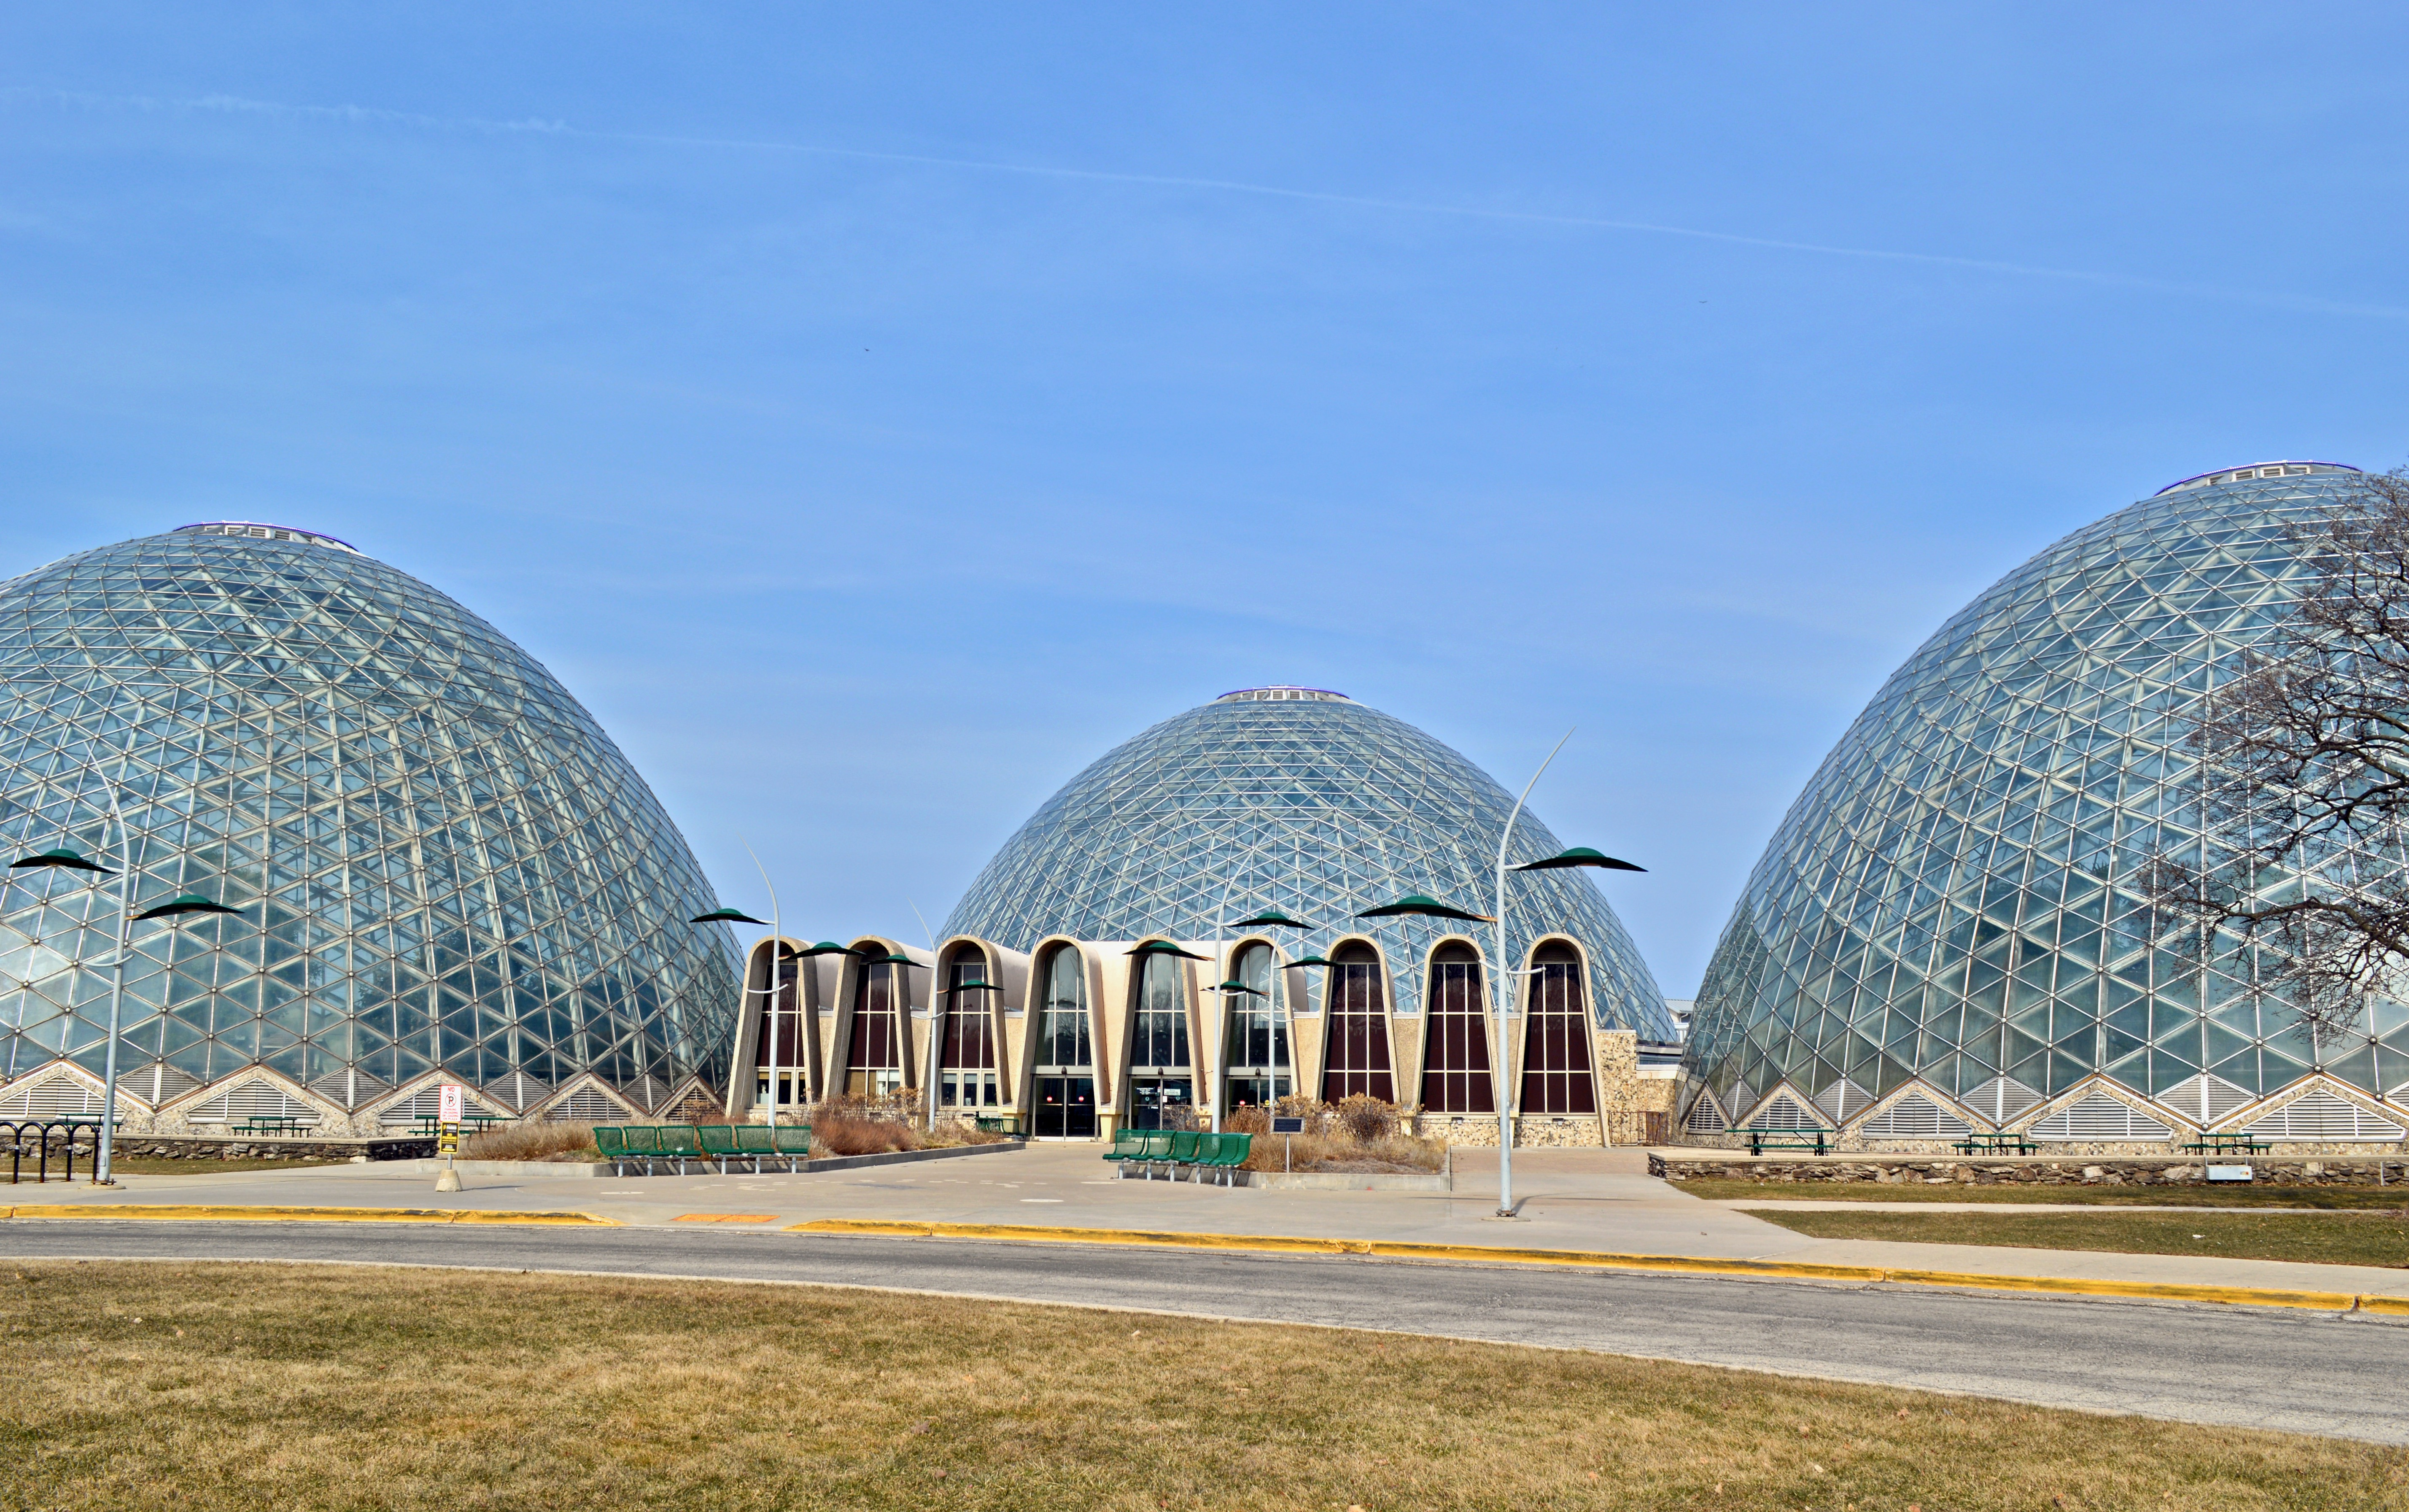 The Mitchell Park Domes have long been an iconic structure in Milwaukee, but high repair costs could lead to their demolition. Photo by Ana Martinez-Ortiz/NNS.